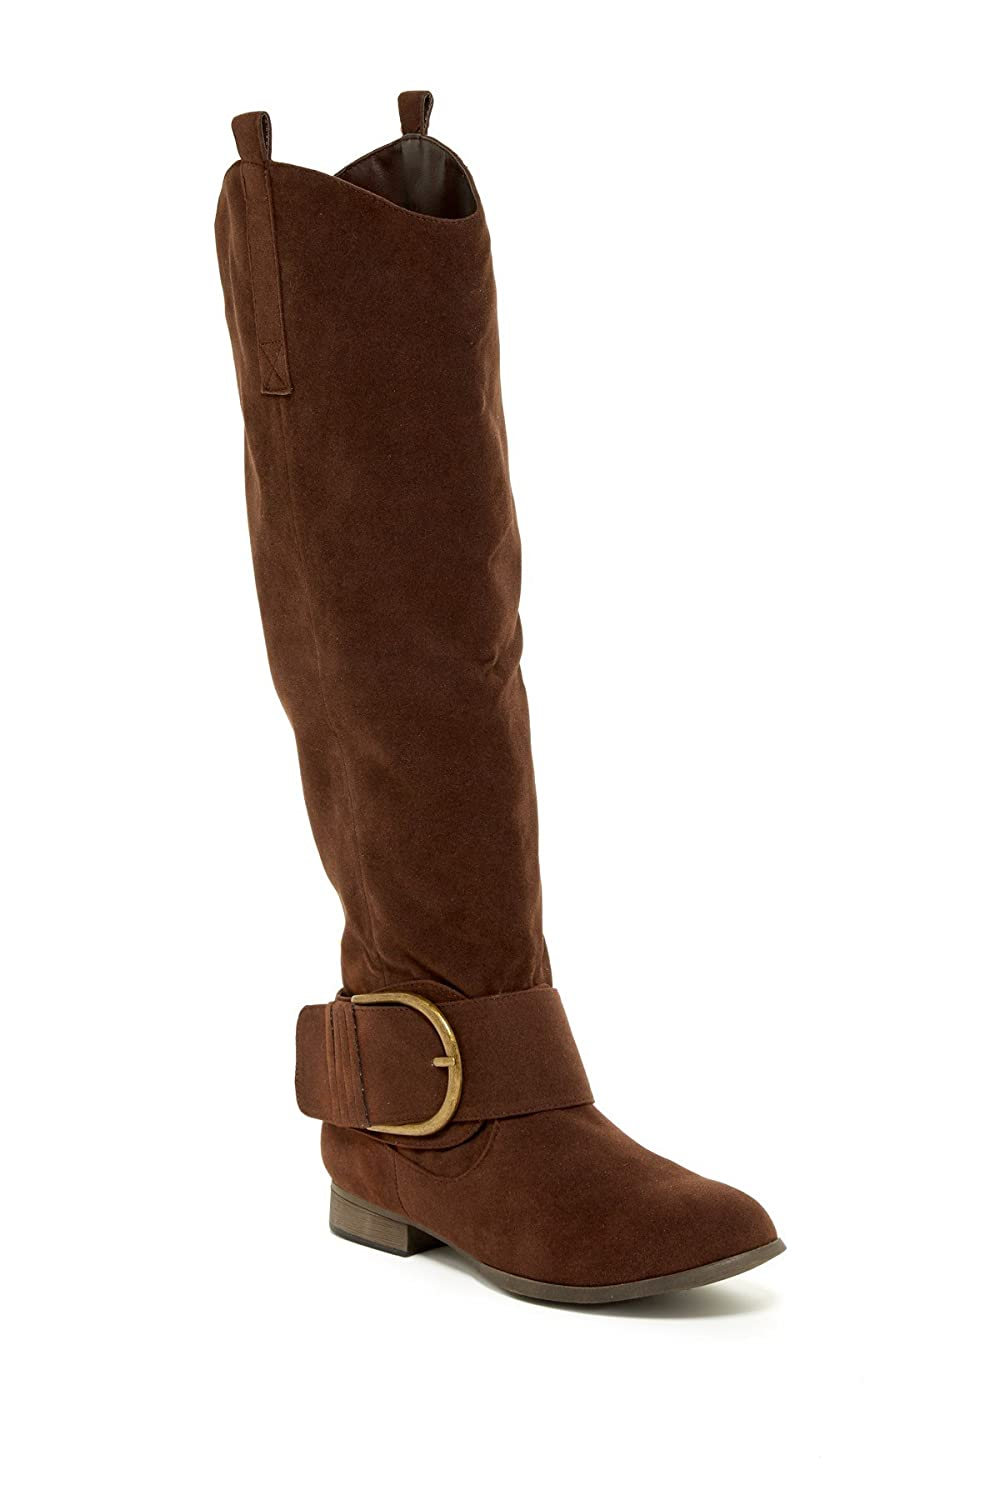 Charles Albert Knee-High Riding Boot with Horseshoe Buckle